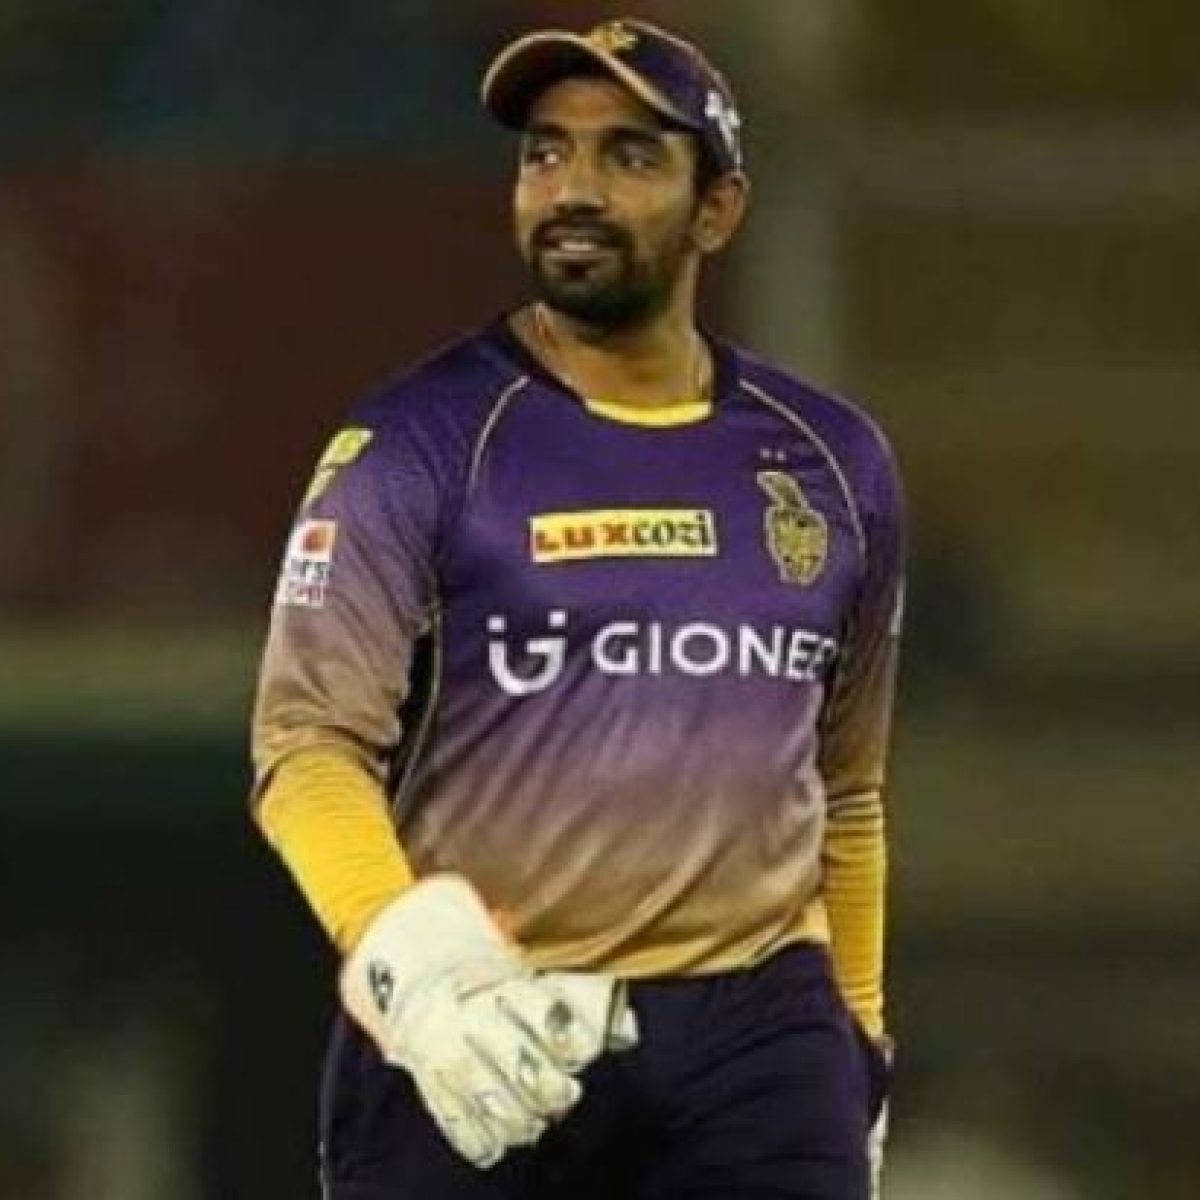 'I believe I've a World Cup left in me' Karnataka's dashing, Robin Uthappa eyeing India T20 return as finisher